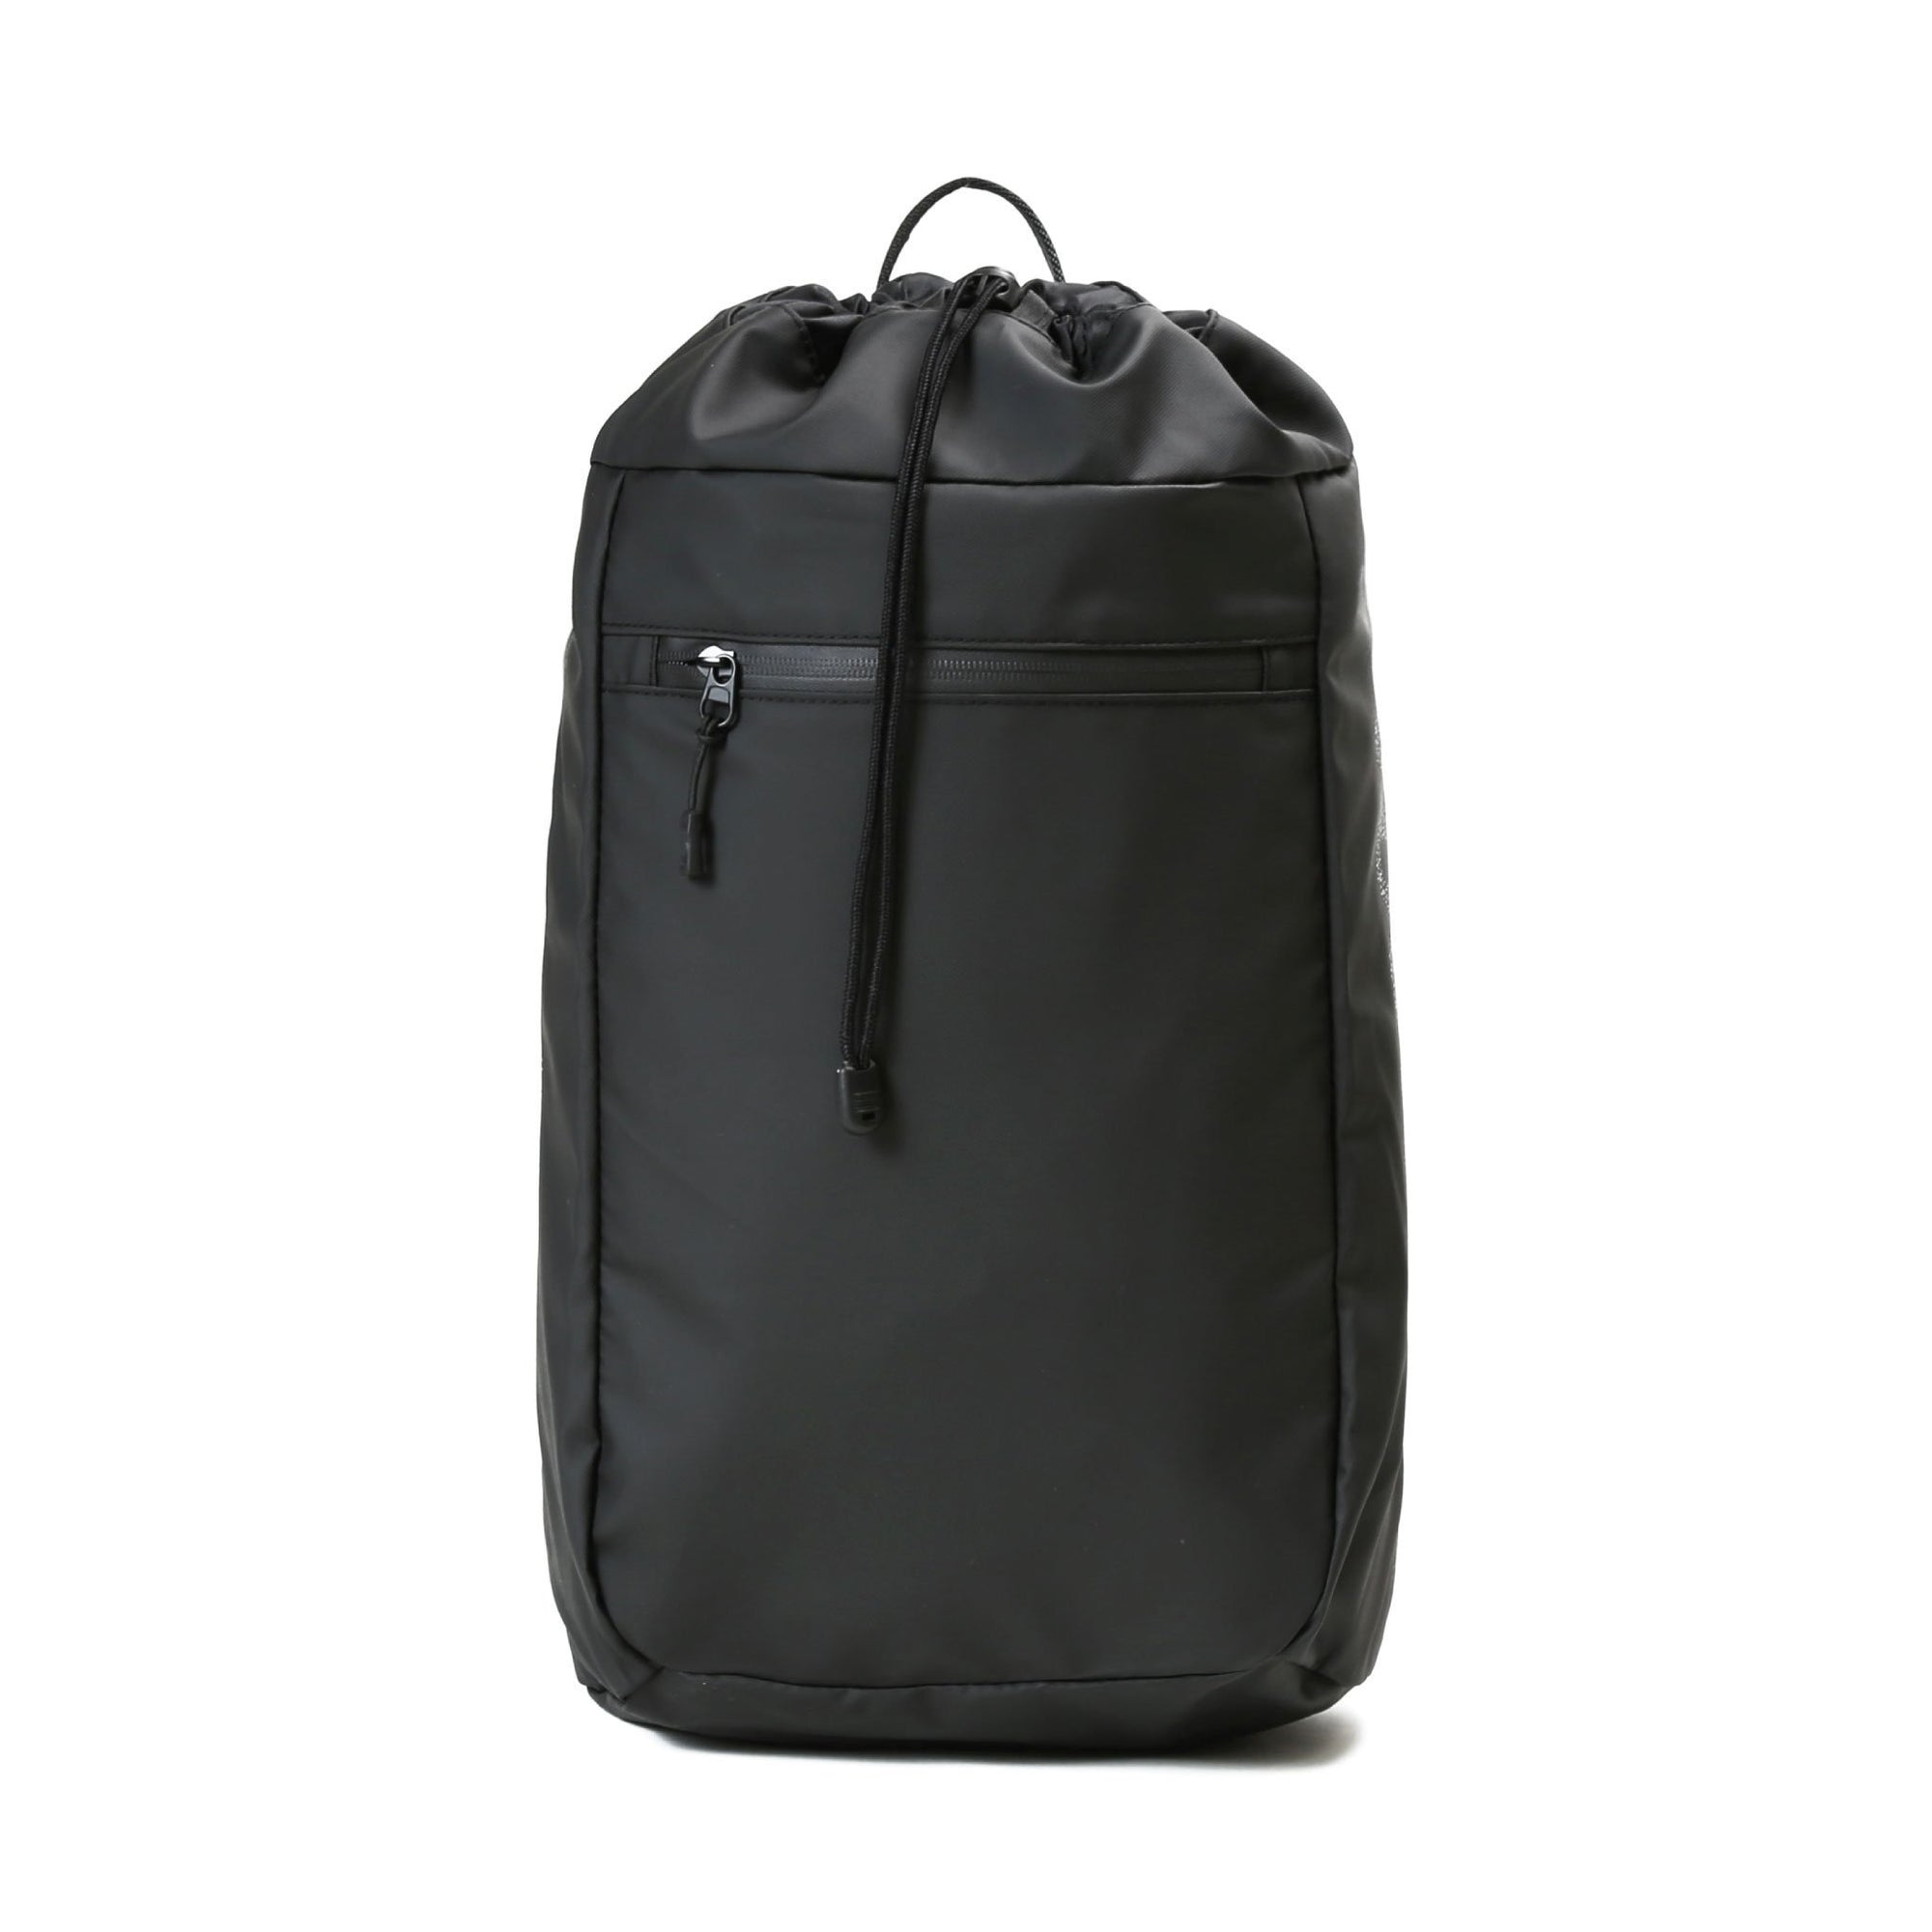 Vooray Stride Cinch Backpack- Matte Black